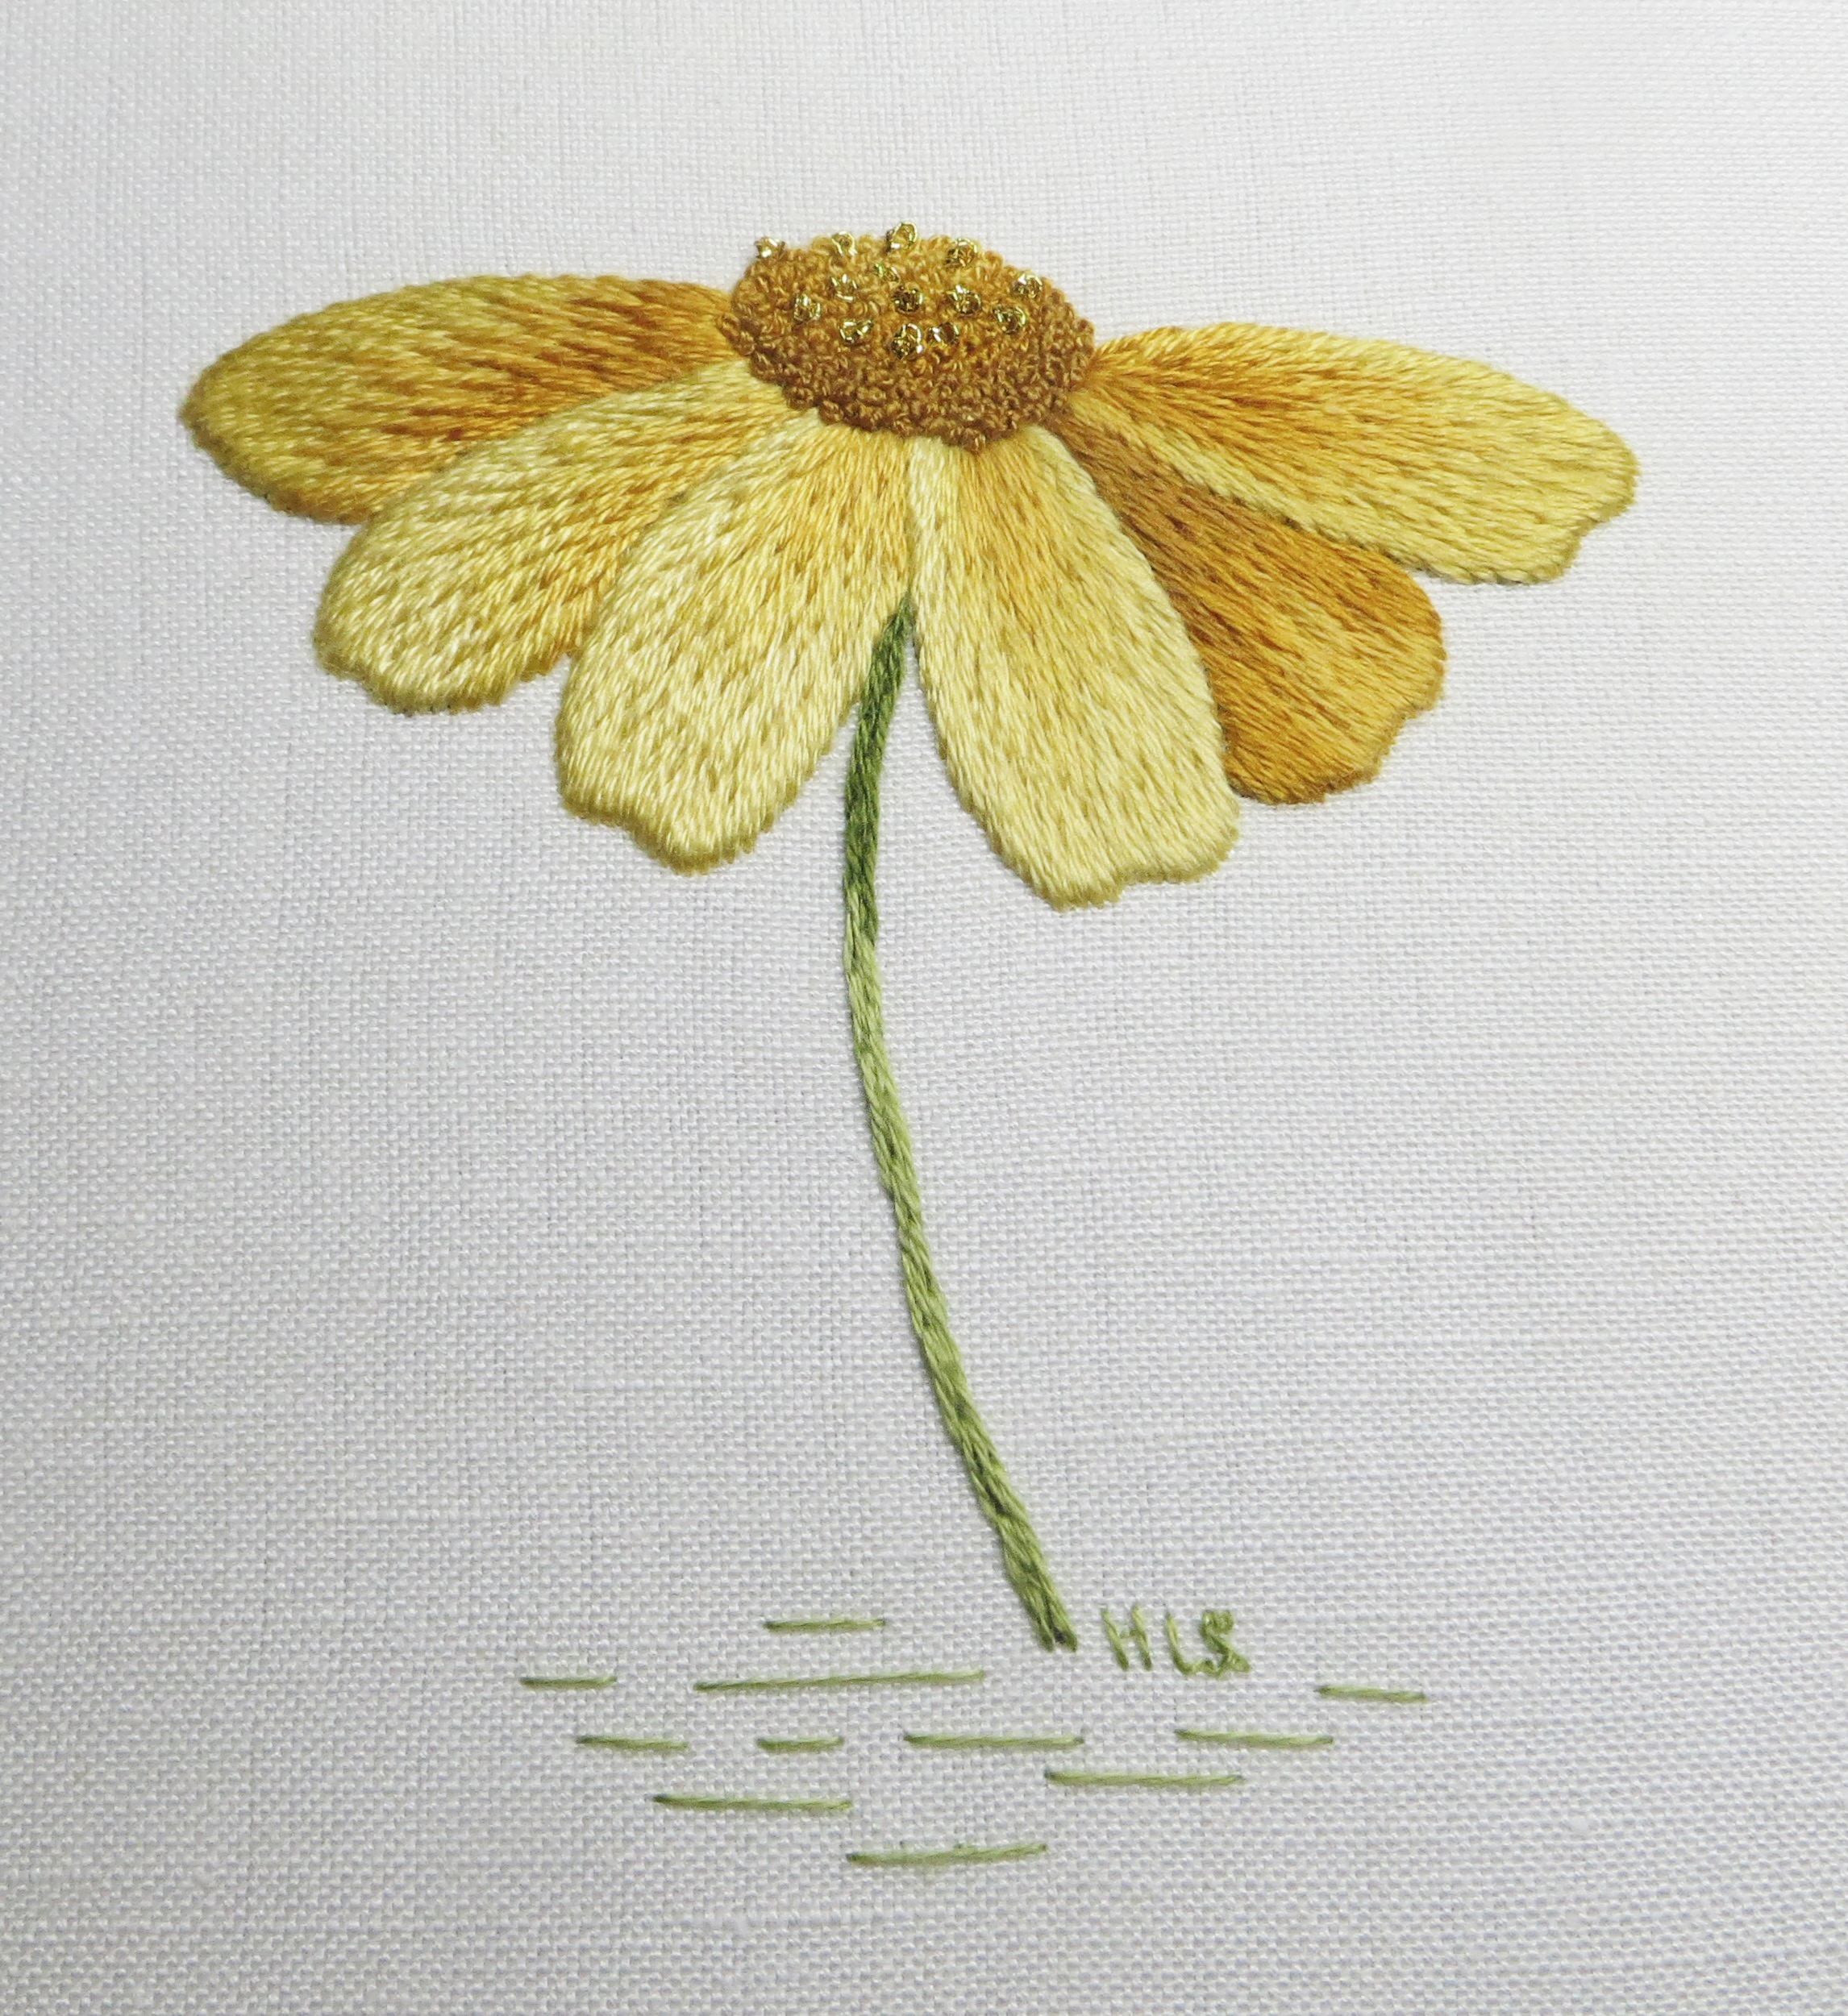 Silk-shaded Daisy from the RSN class